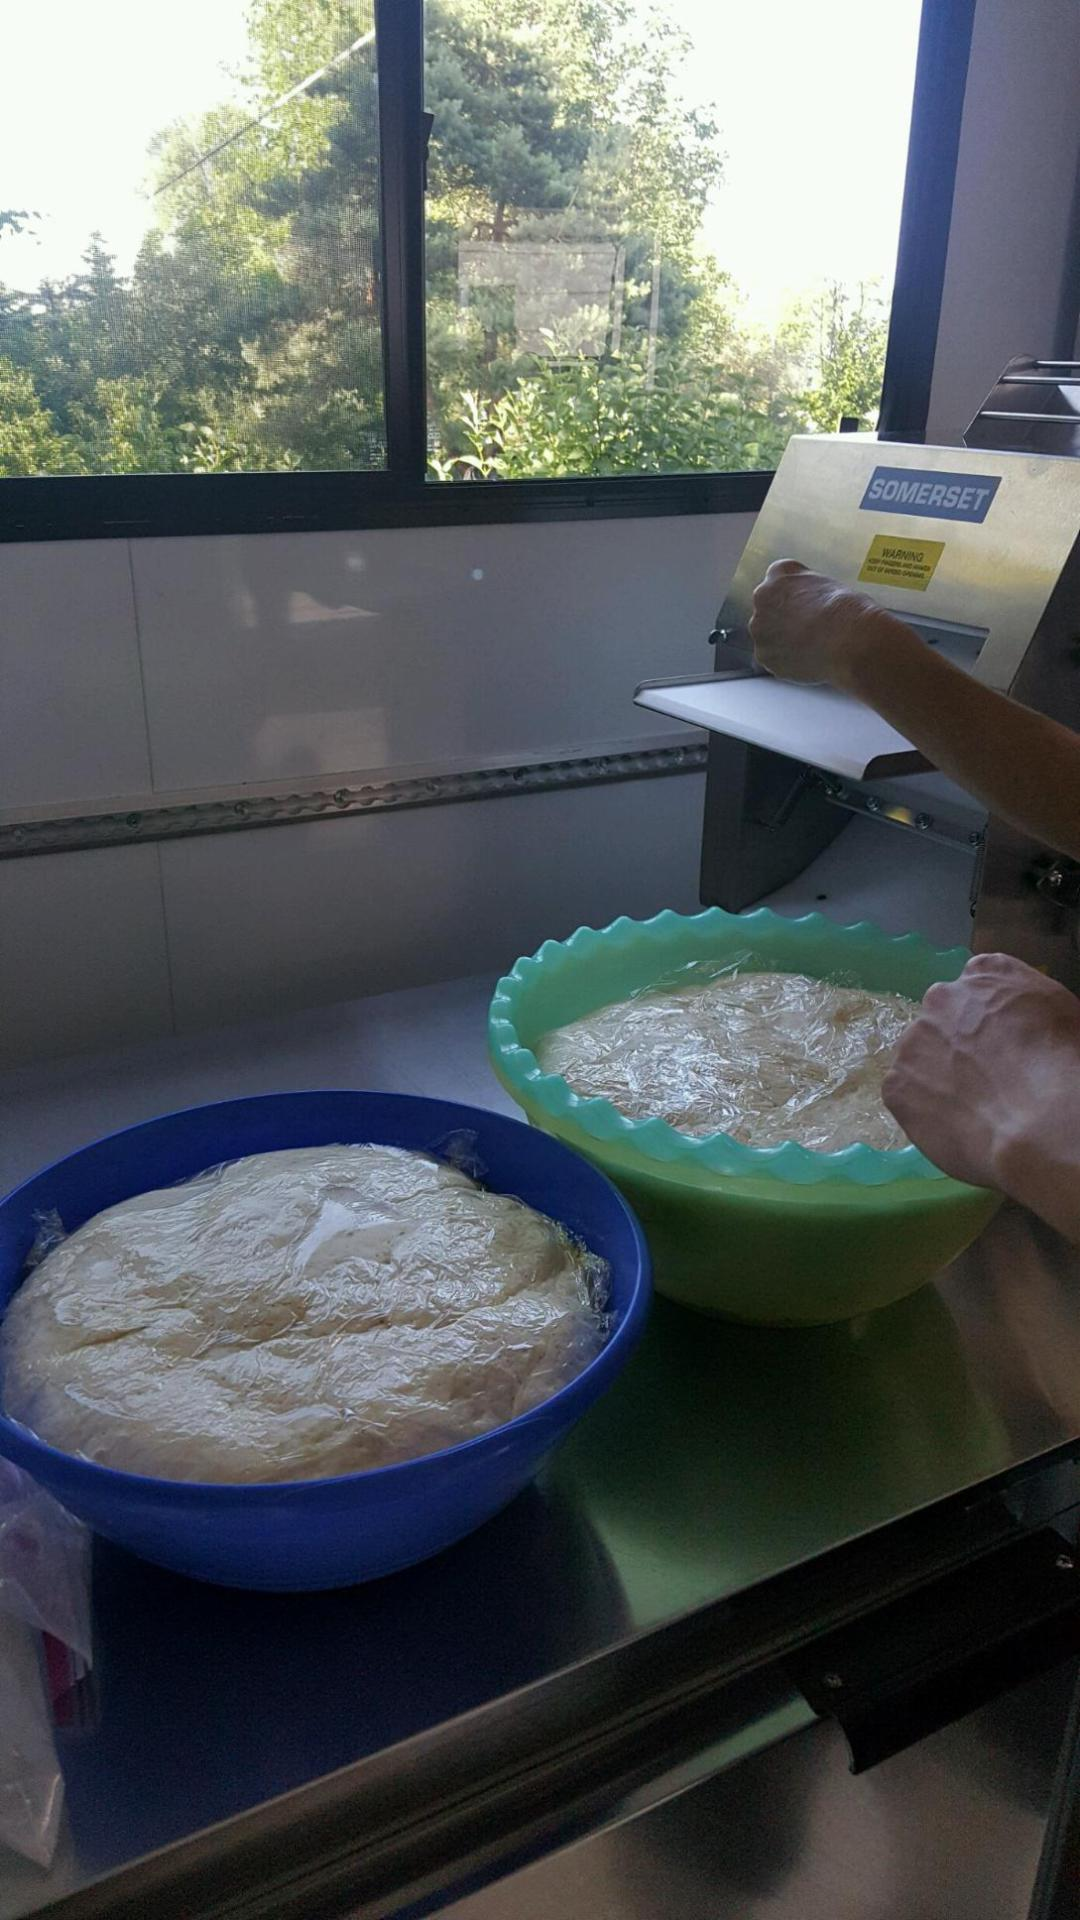 The dough rising.